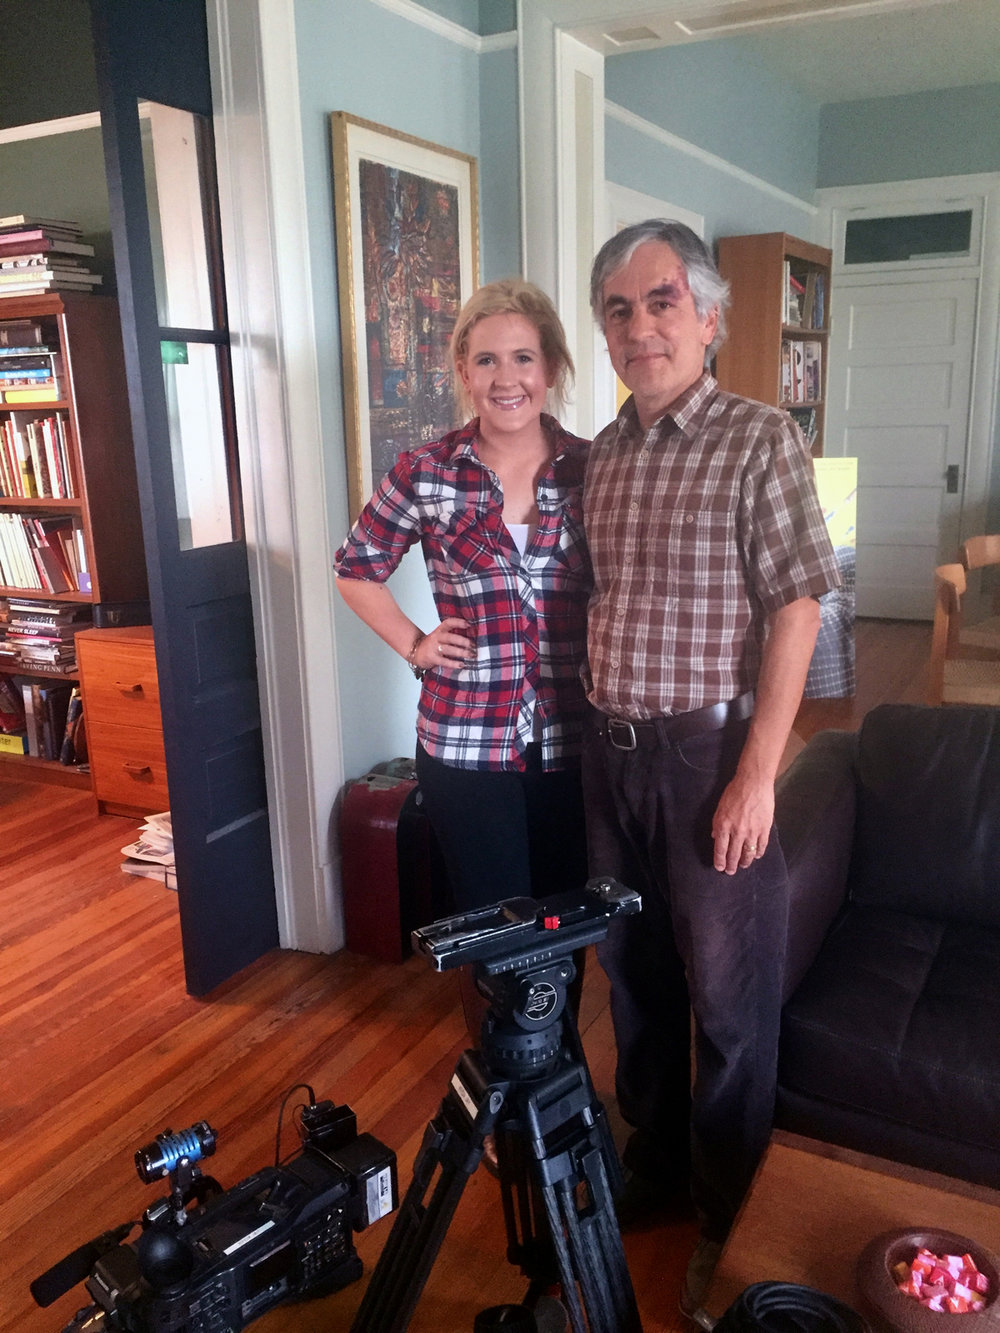 I'll be on KFOX 14 tonight at 9 p.m.  This is Genevieve Curtis, Chief Investigative Reporter for KFOX 14 News. She interviewed me today at my office on a segment about the BIG $$$ behind the EPISD PACs. ($500,000 and counting)